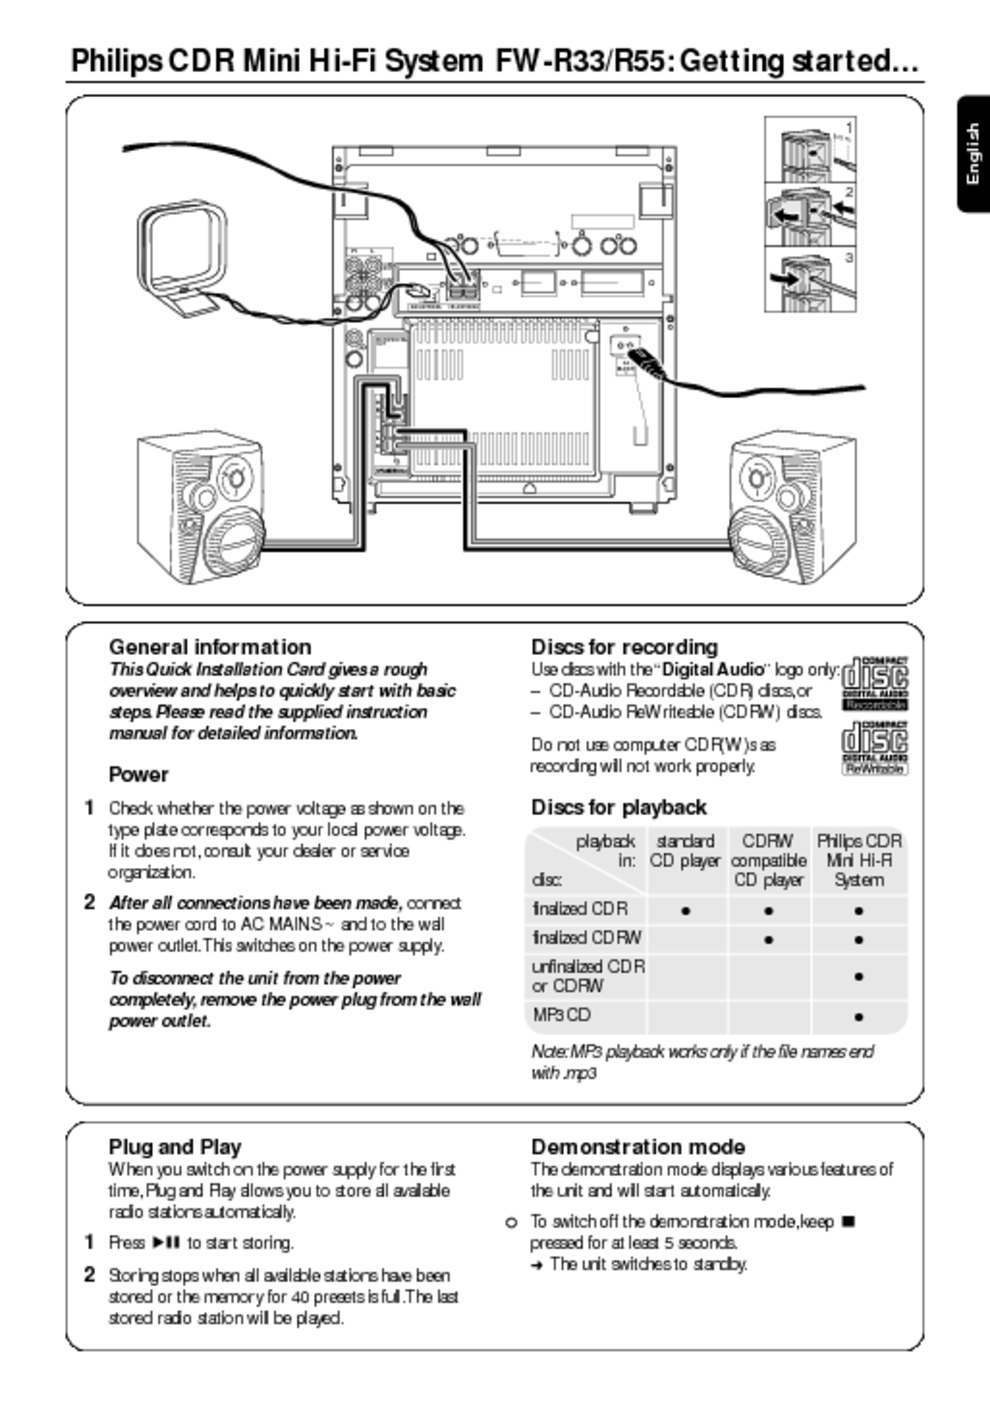 mp3 player users guides mp3 player page 192 rh usersmanuals1 com Philips Universal Remote User Manual Philips TV Manual